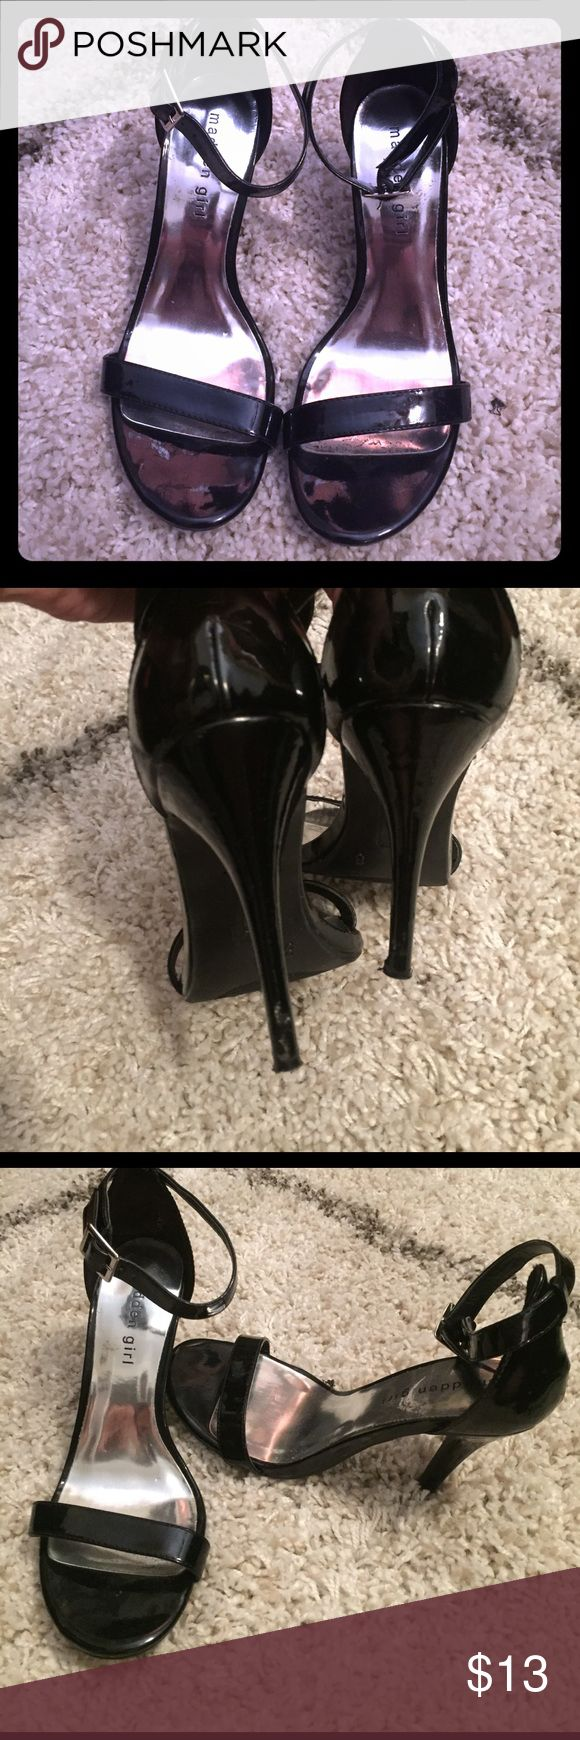 Black heels with strap Black heels. Size 8 but can fit up to 8.5. slight wear as seen in pictures - priced to reflect Madden Girl Shoes Platforms